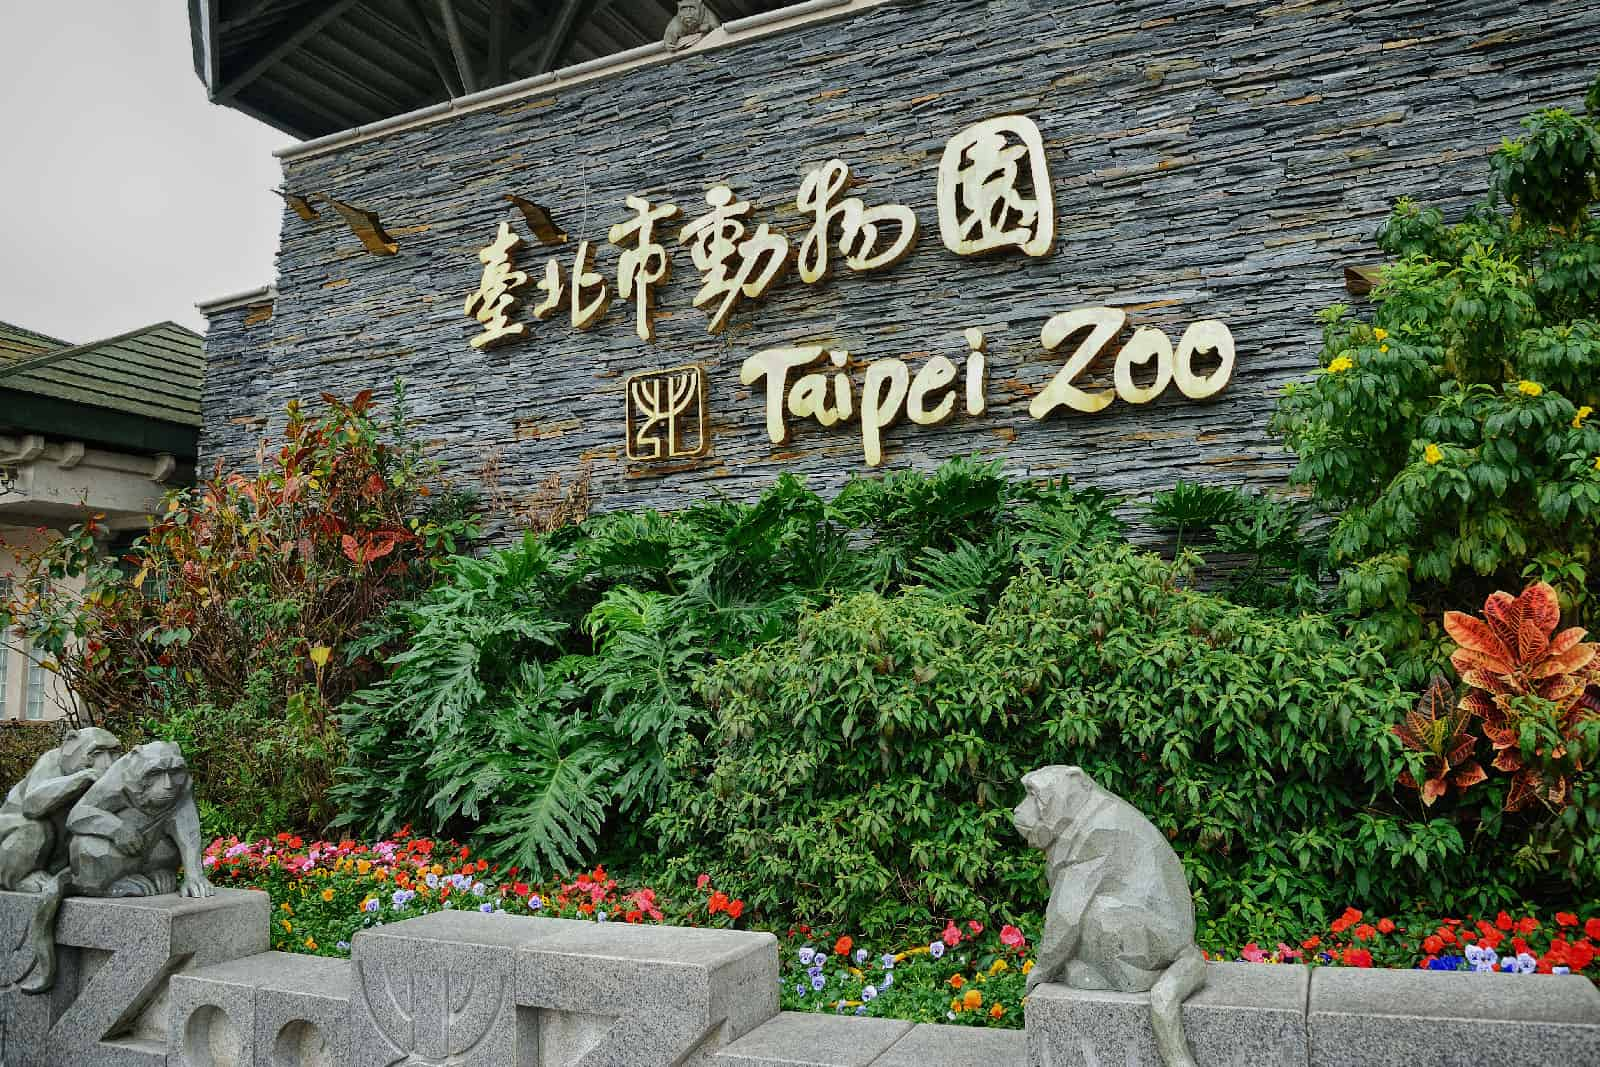 Best Things to Do in Taipei: 43 Fun Attractions & Places to